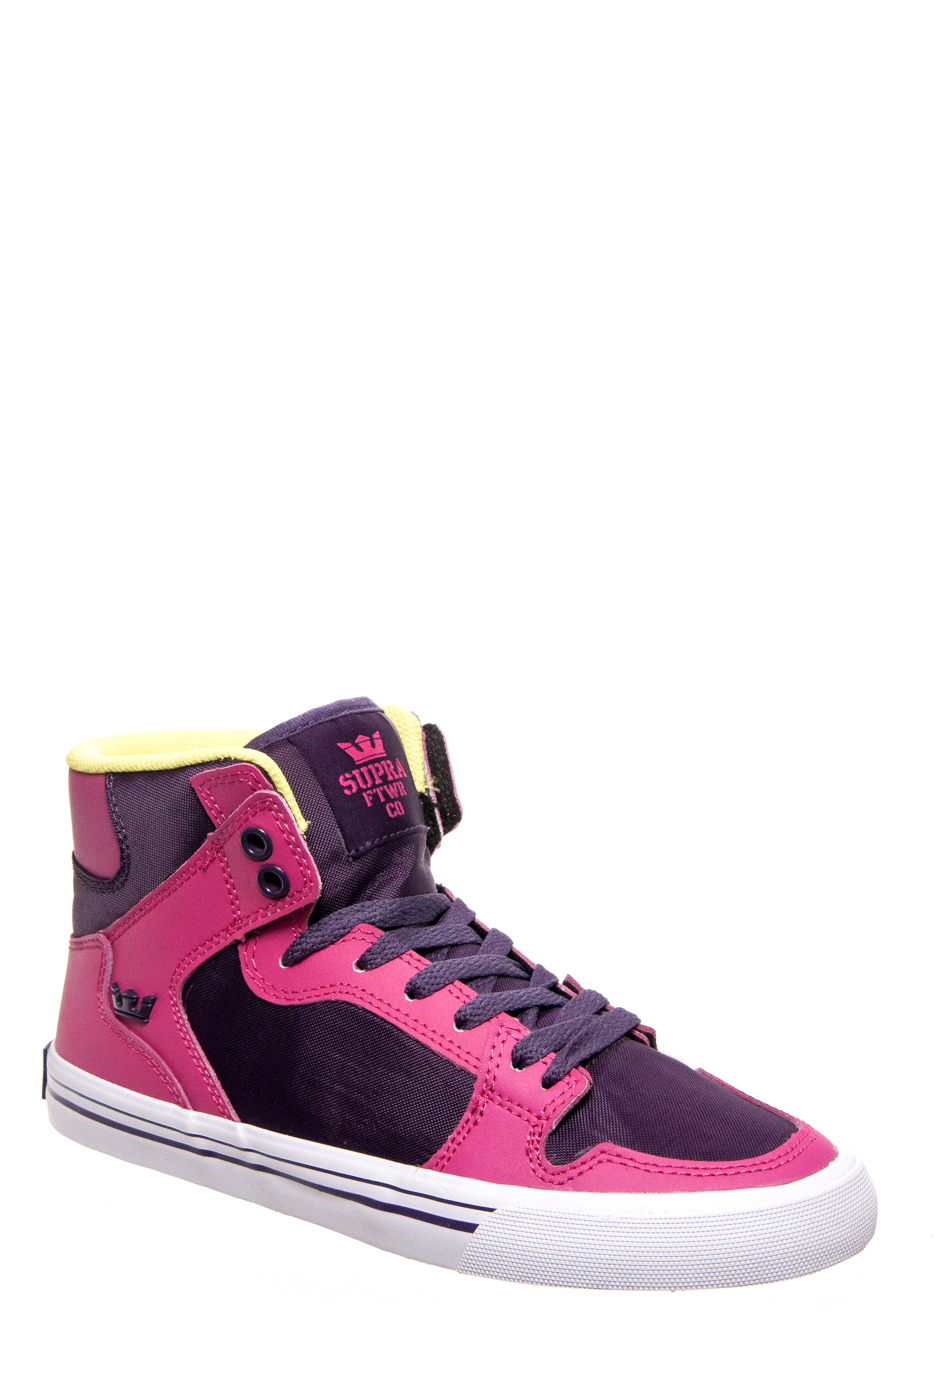 Supra Women's Vaider Hi Top Sneakers